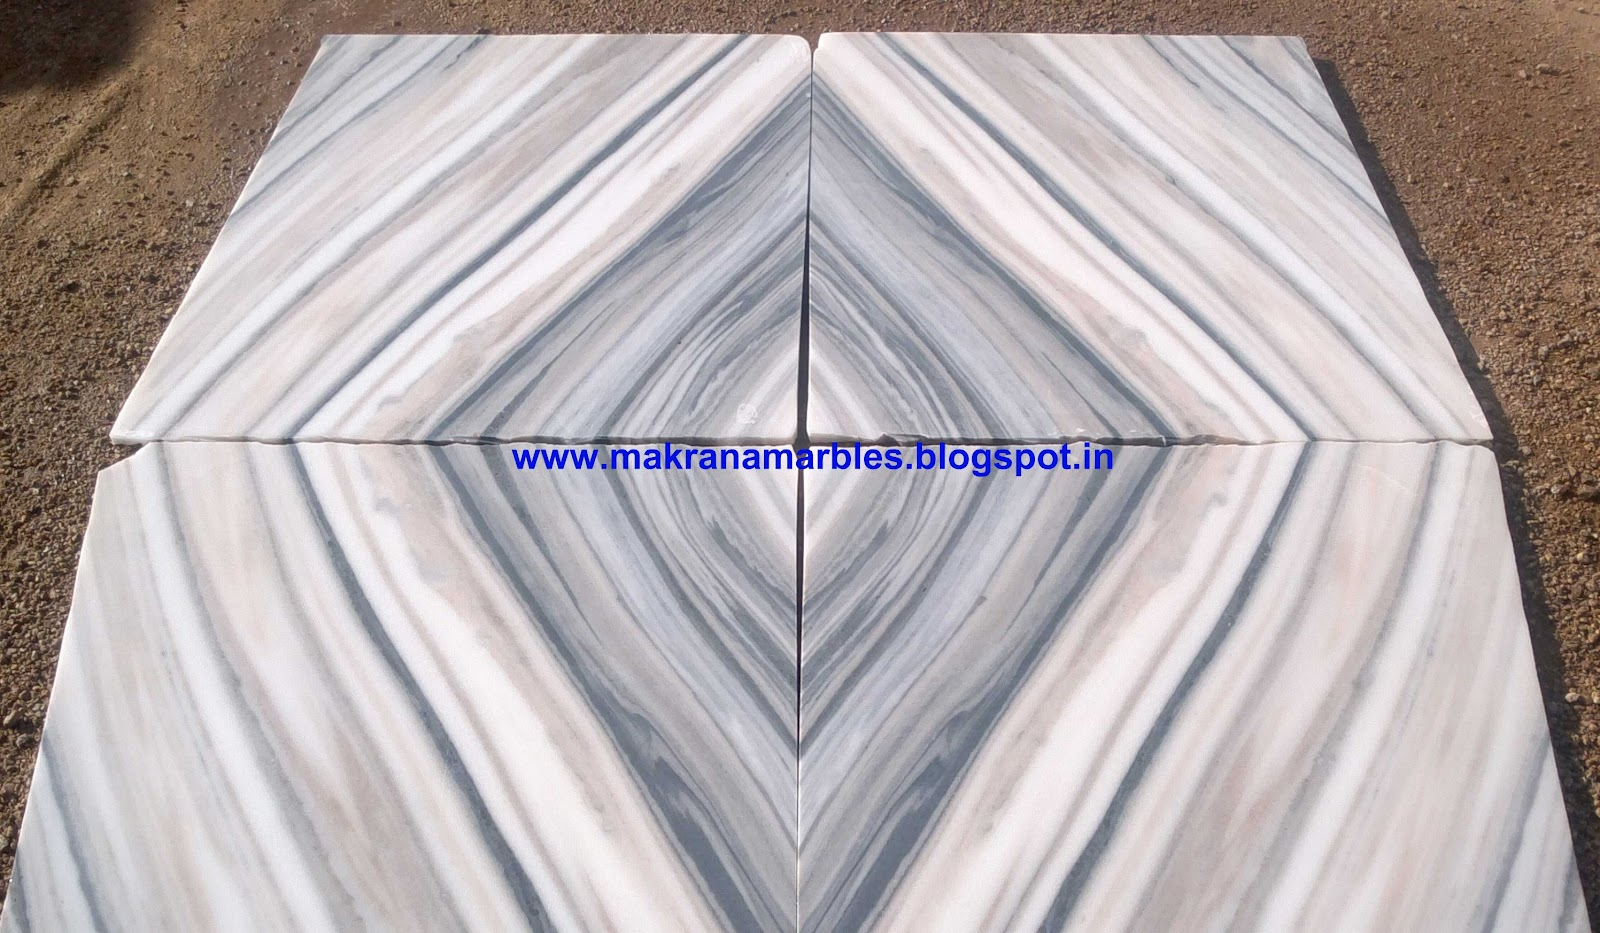 Makrana Marble Product And Pricing Details Makrana Marble